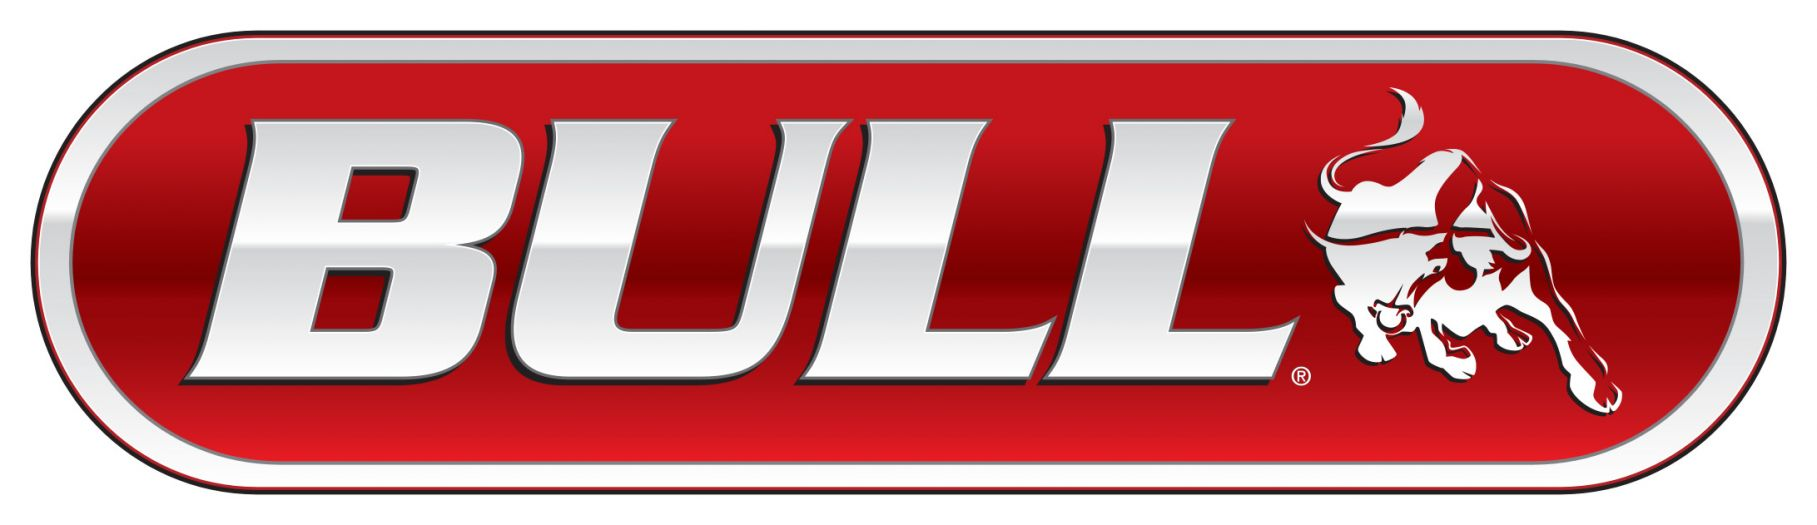 Bull outdoor products Logo